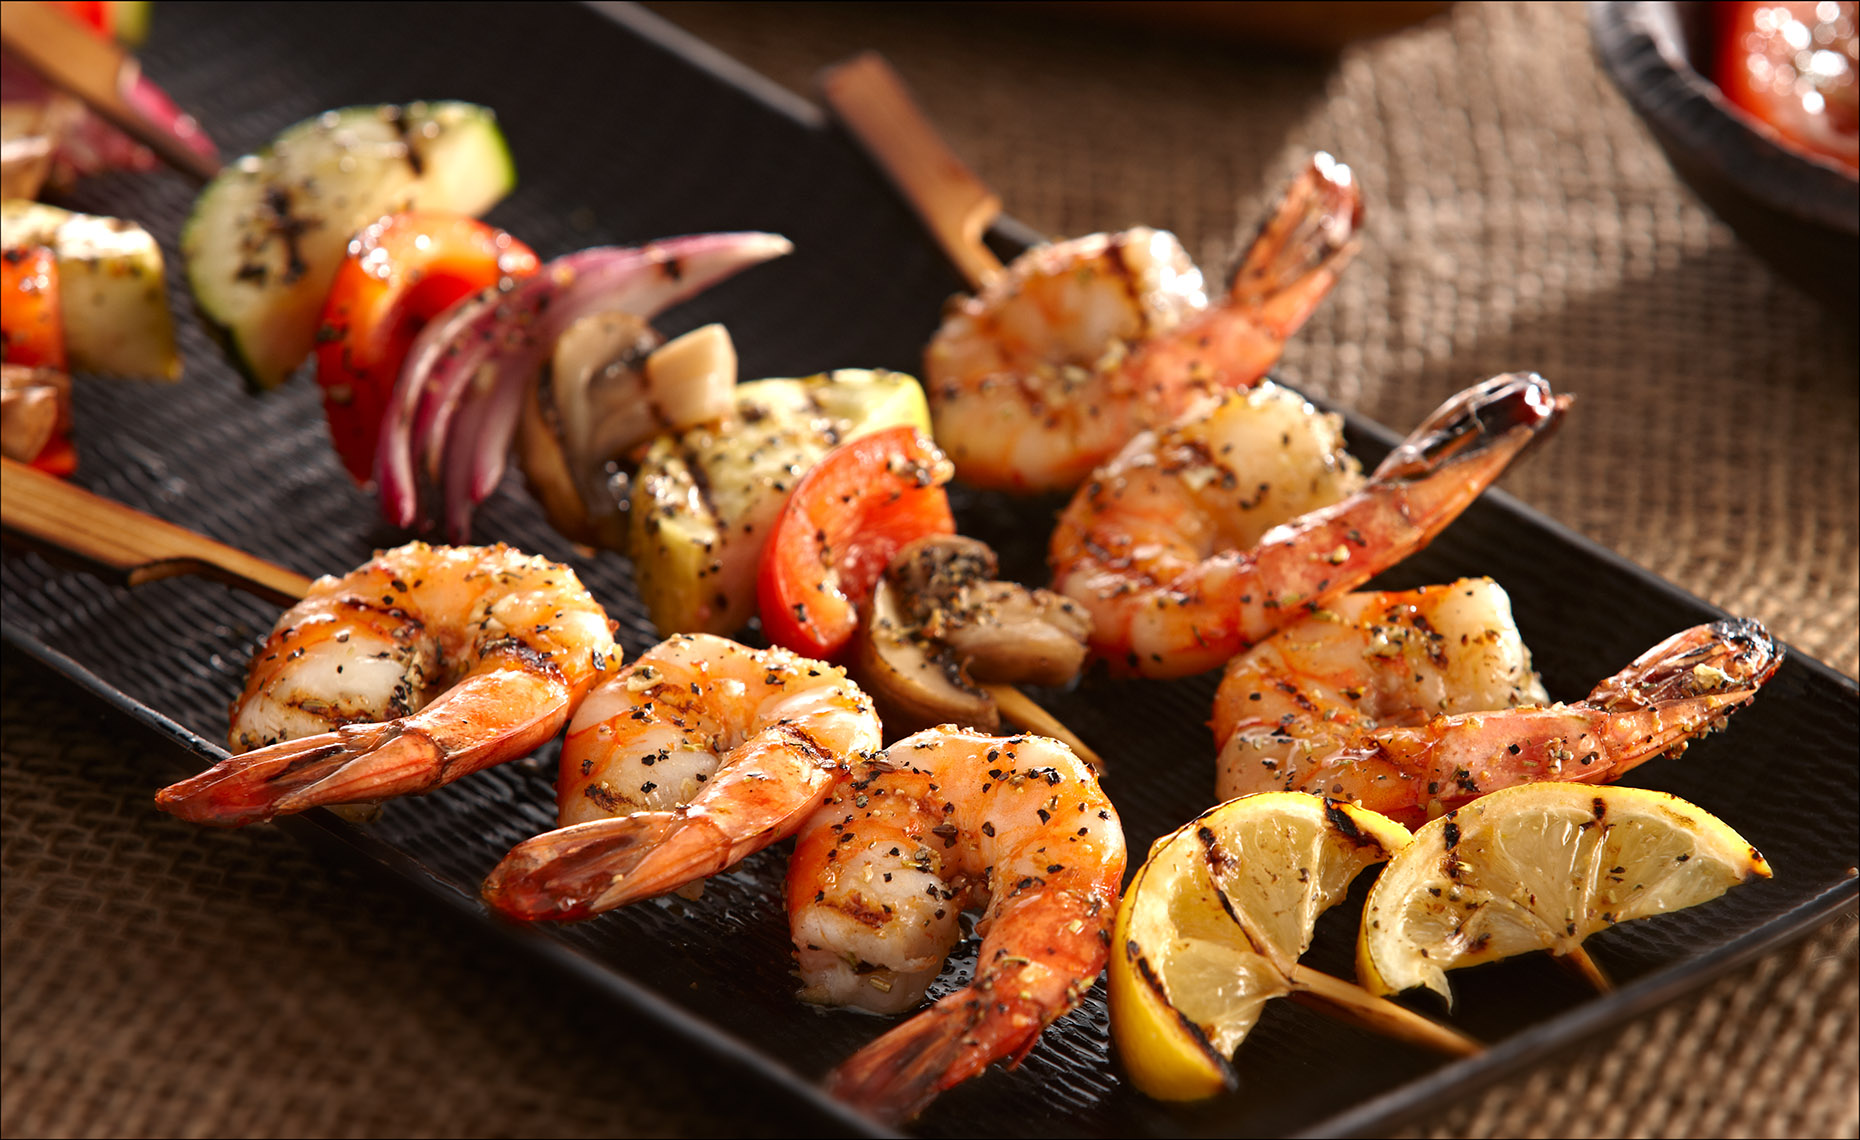 Food Photographer, Seafood Photography | Pohuski Studios,  Grilled Shrimp Kebabs